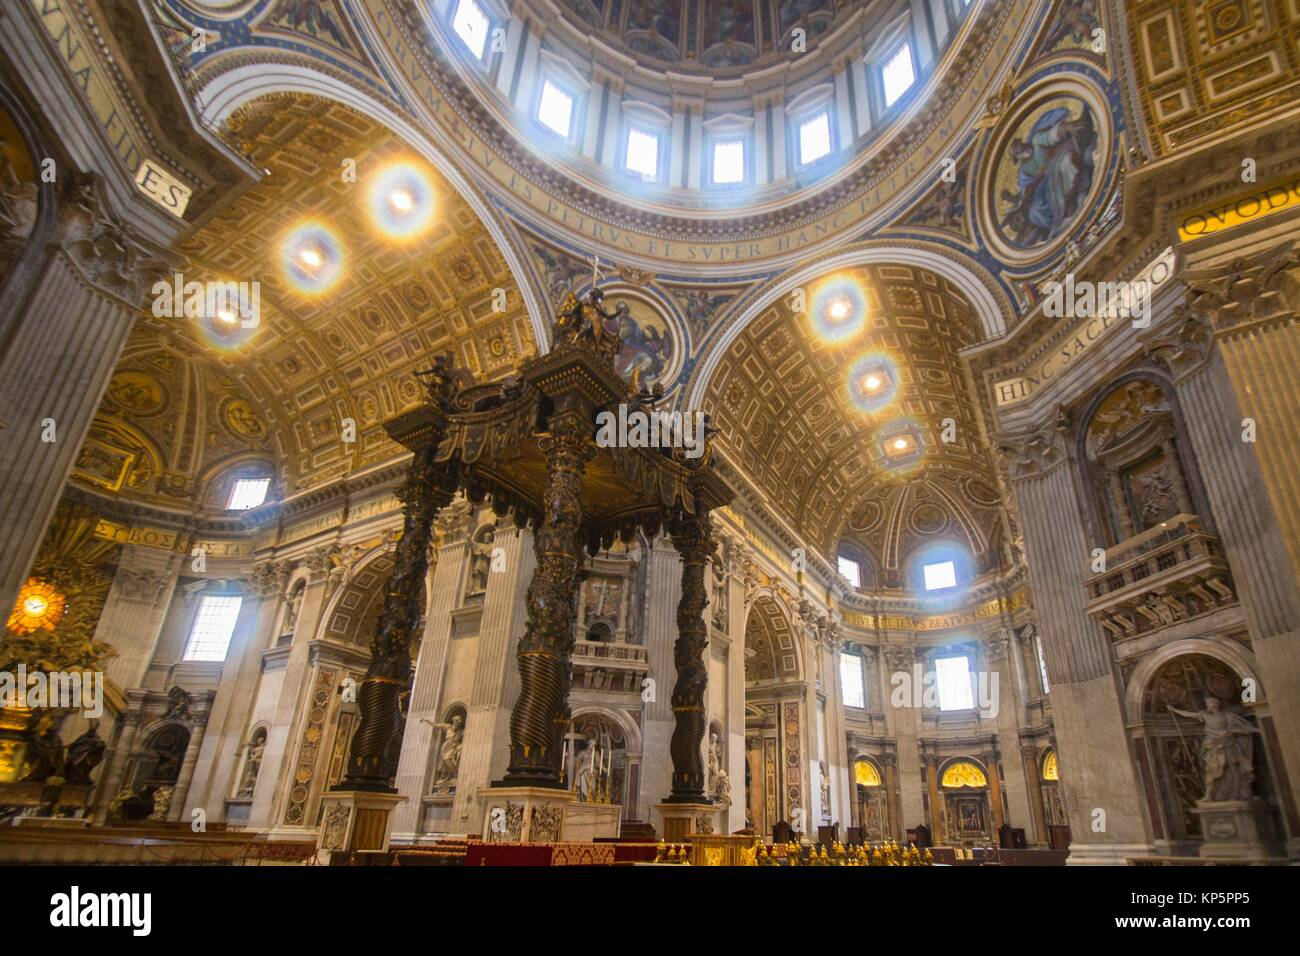 Papal Basilica of Saint Peter in the Vatican Interior on February 5, 2017 in Rome Italy. - Stock Image